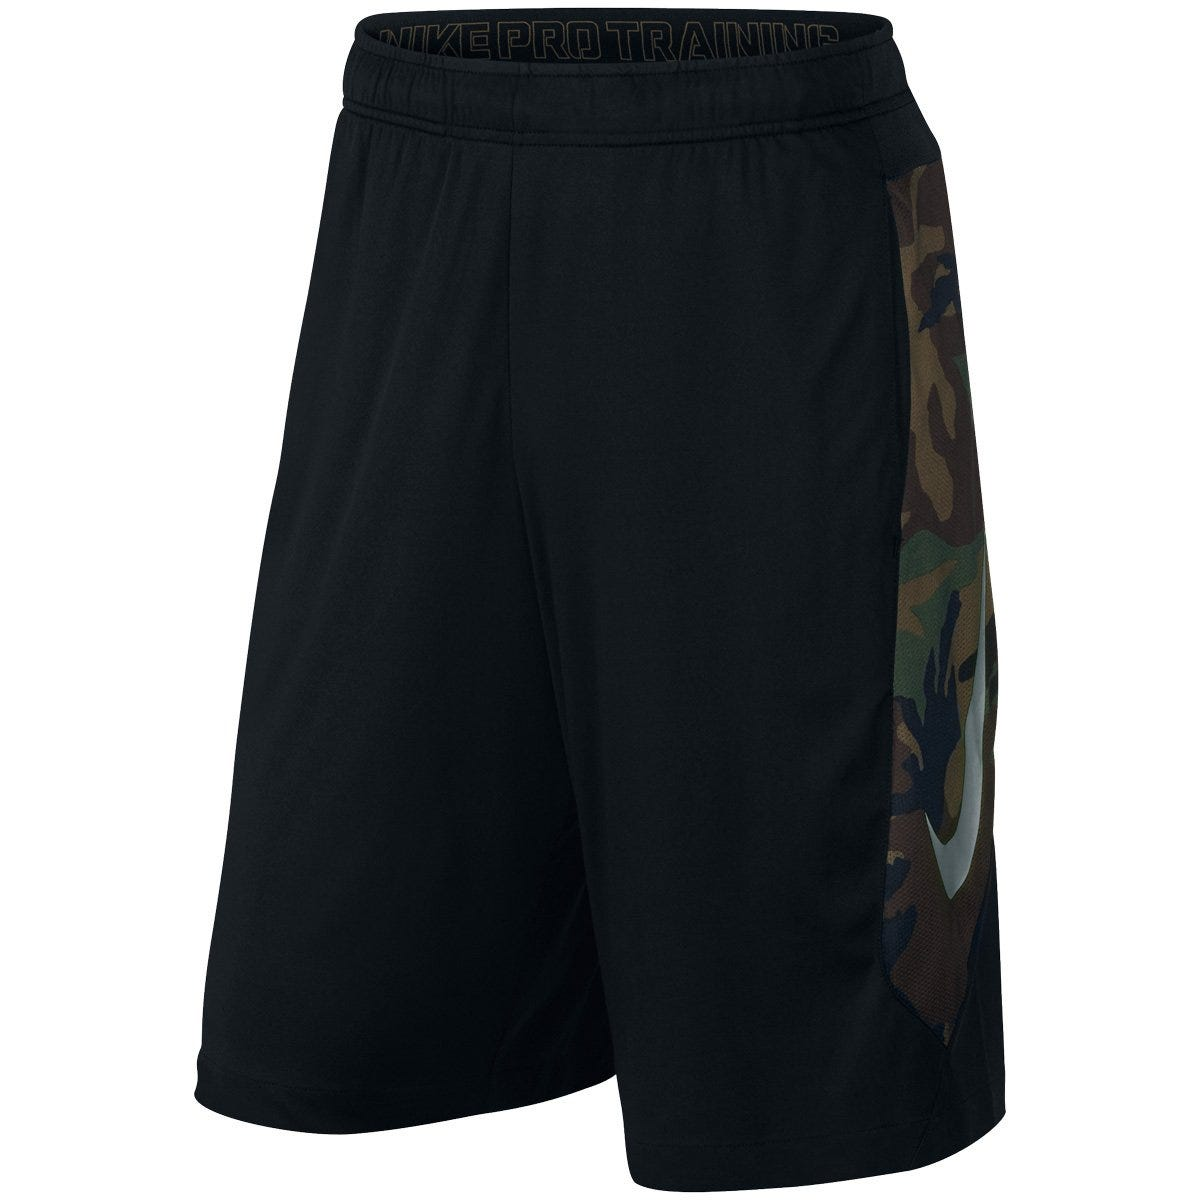 Mens XL Hyperspeed Knit Camo Sr. Training Shorts by Nike; White/Black